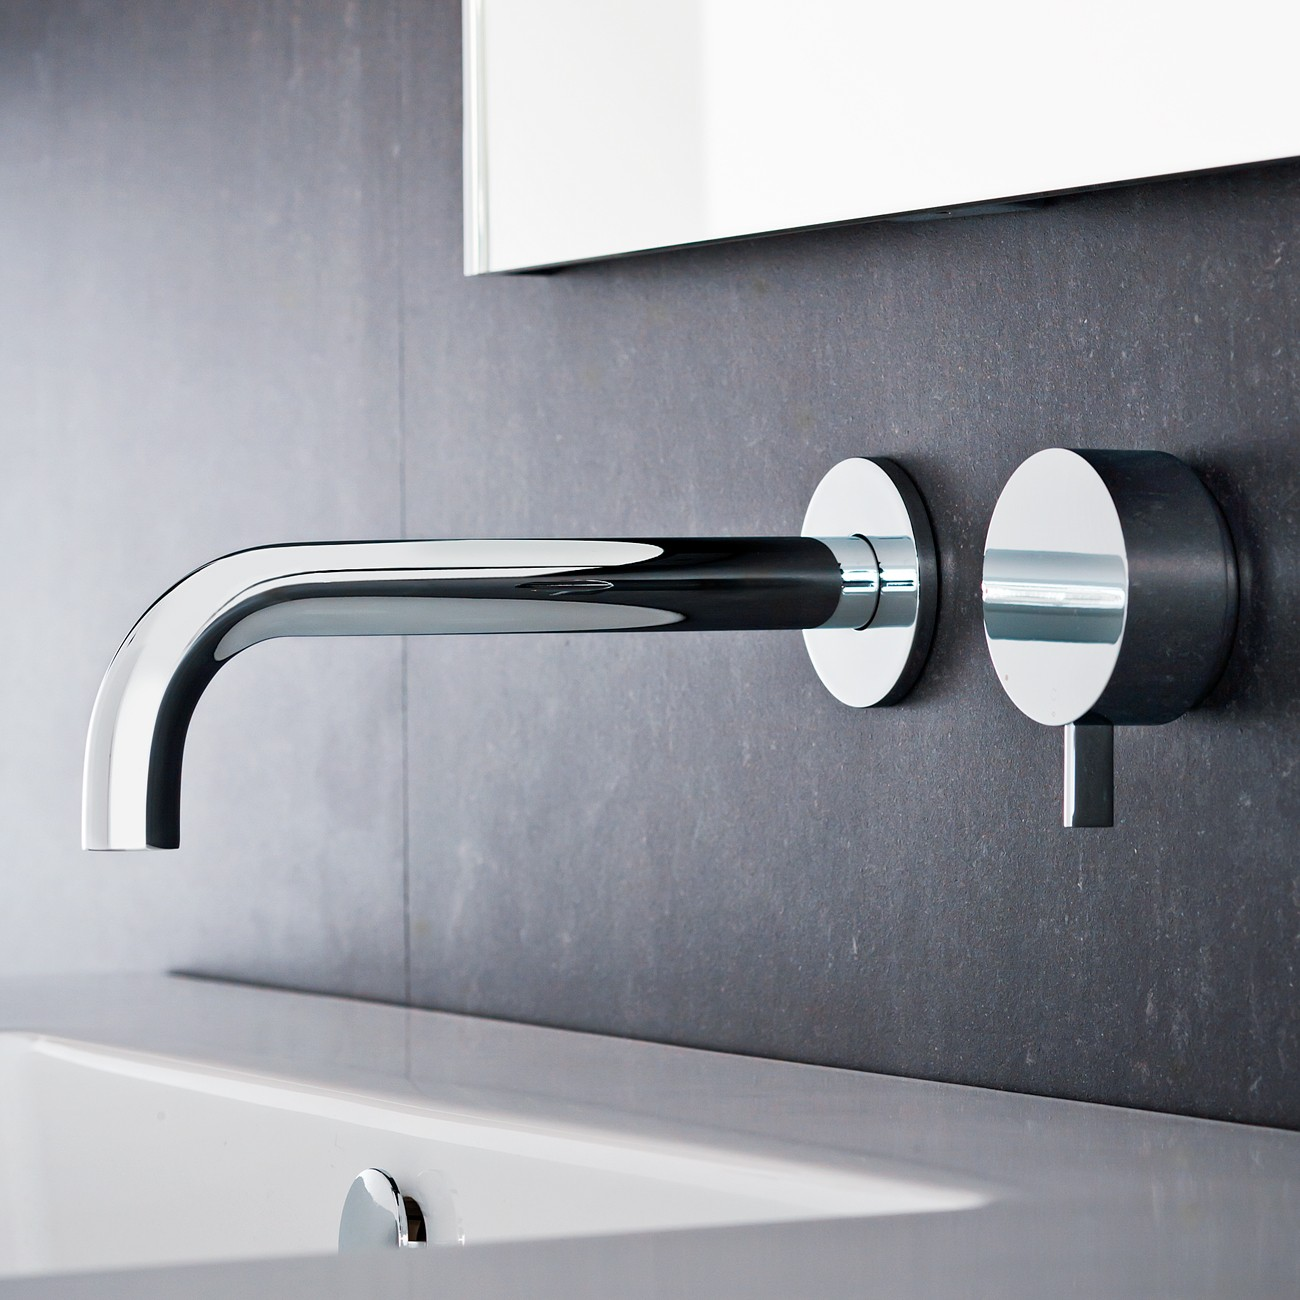 What Things To Look For While Buying A Basin Mixer Tap